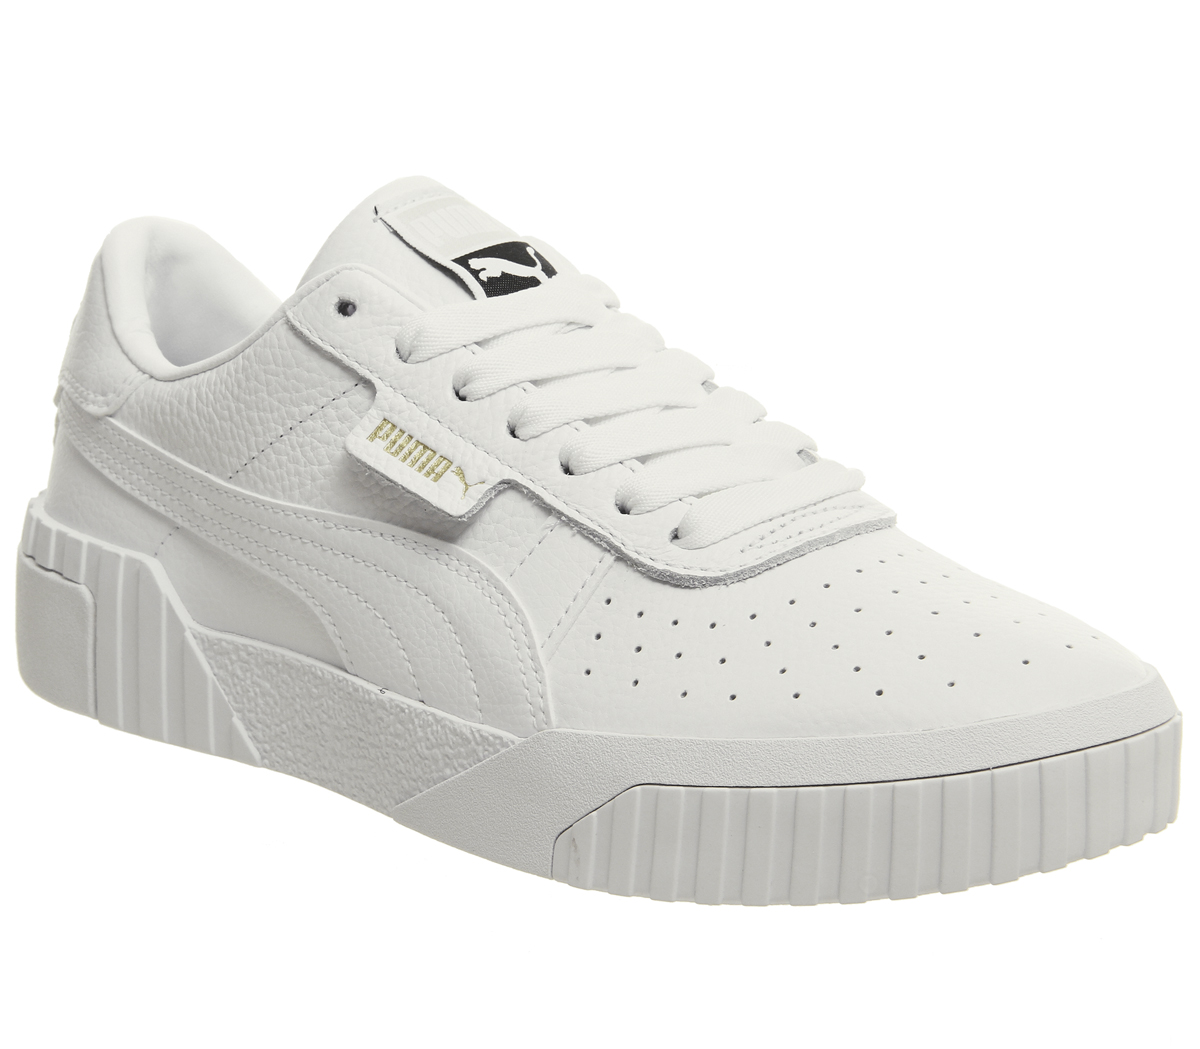 d95c527a1ef3 Sentinel Womens Puma Cali Trainers Puma White Puma White Trainers Shoes